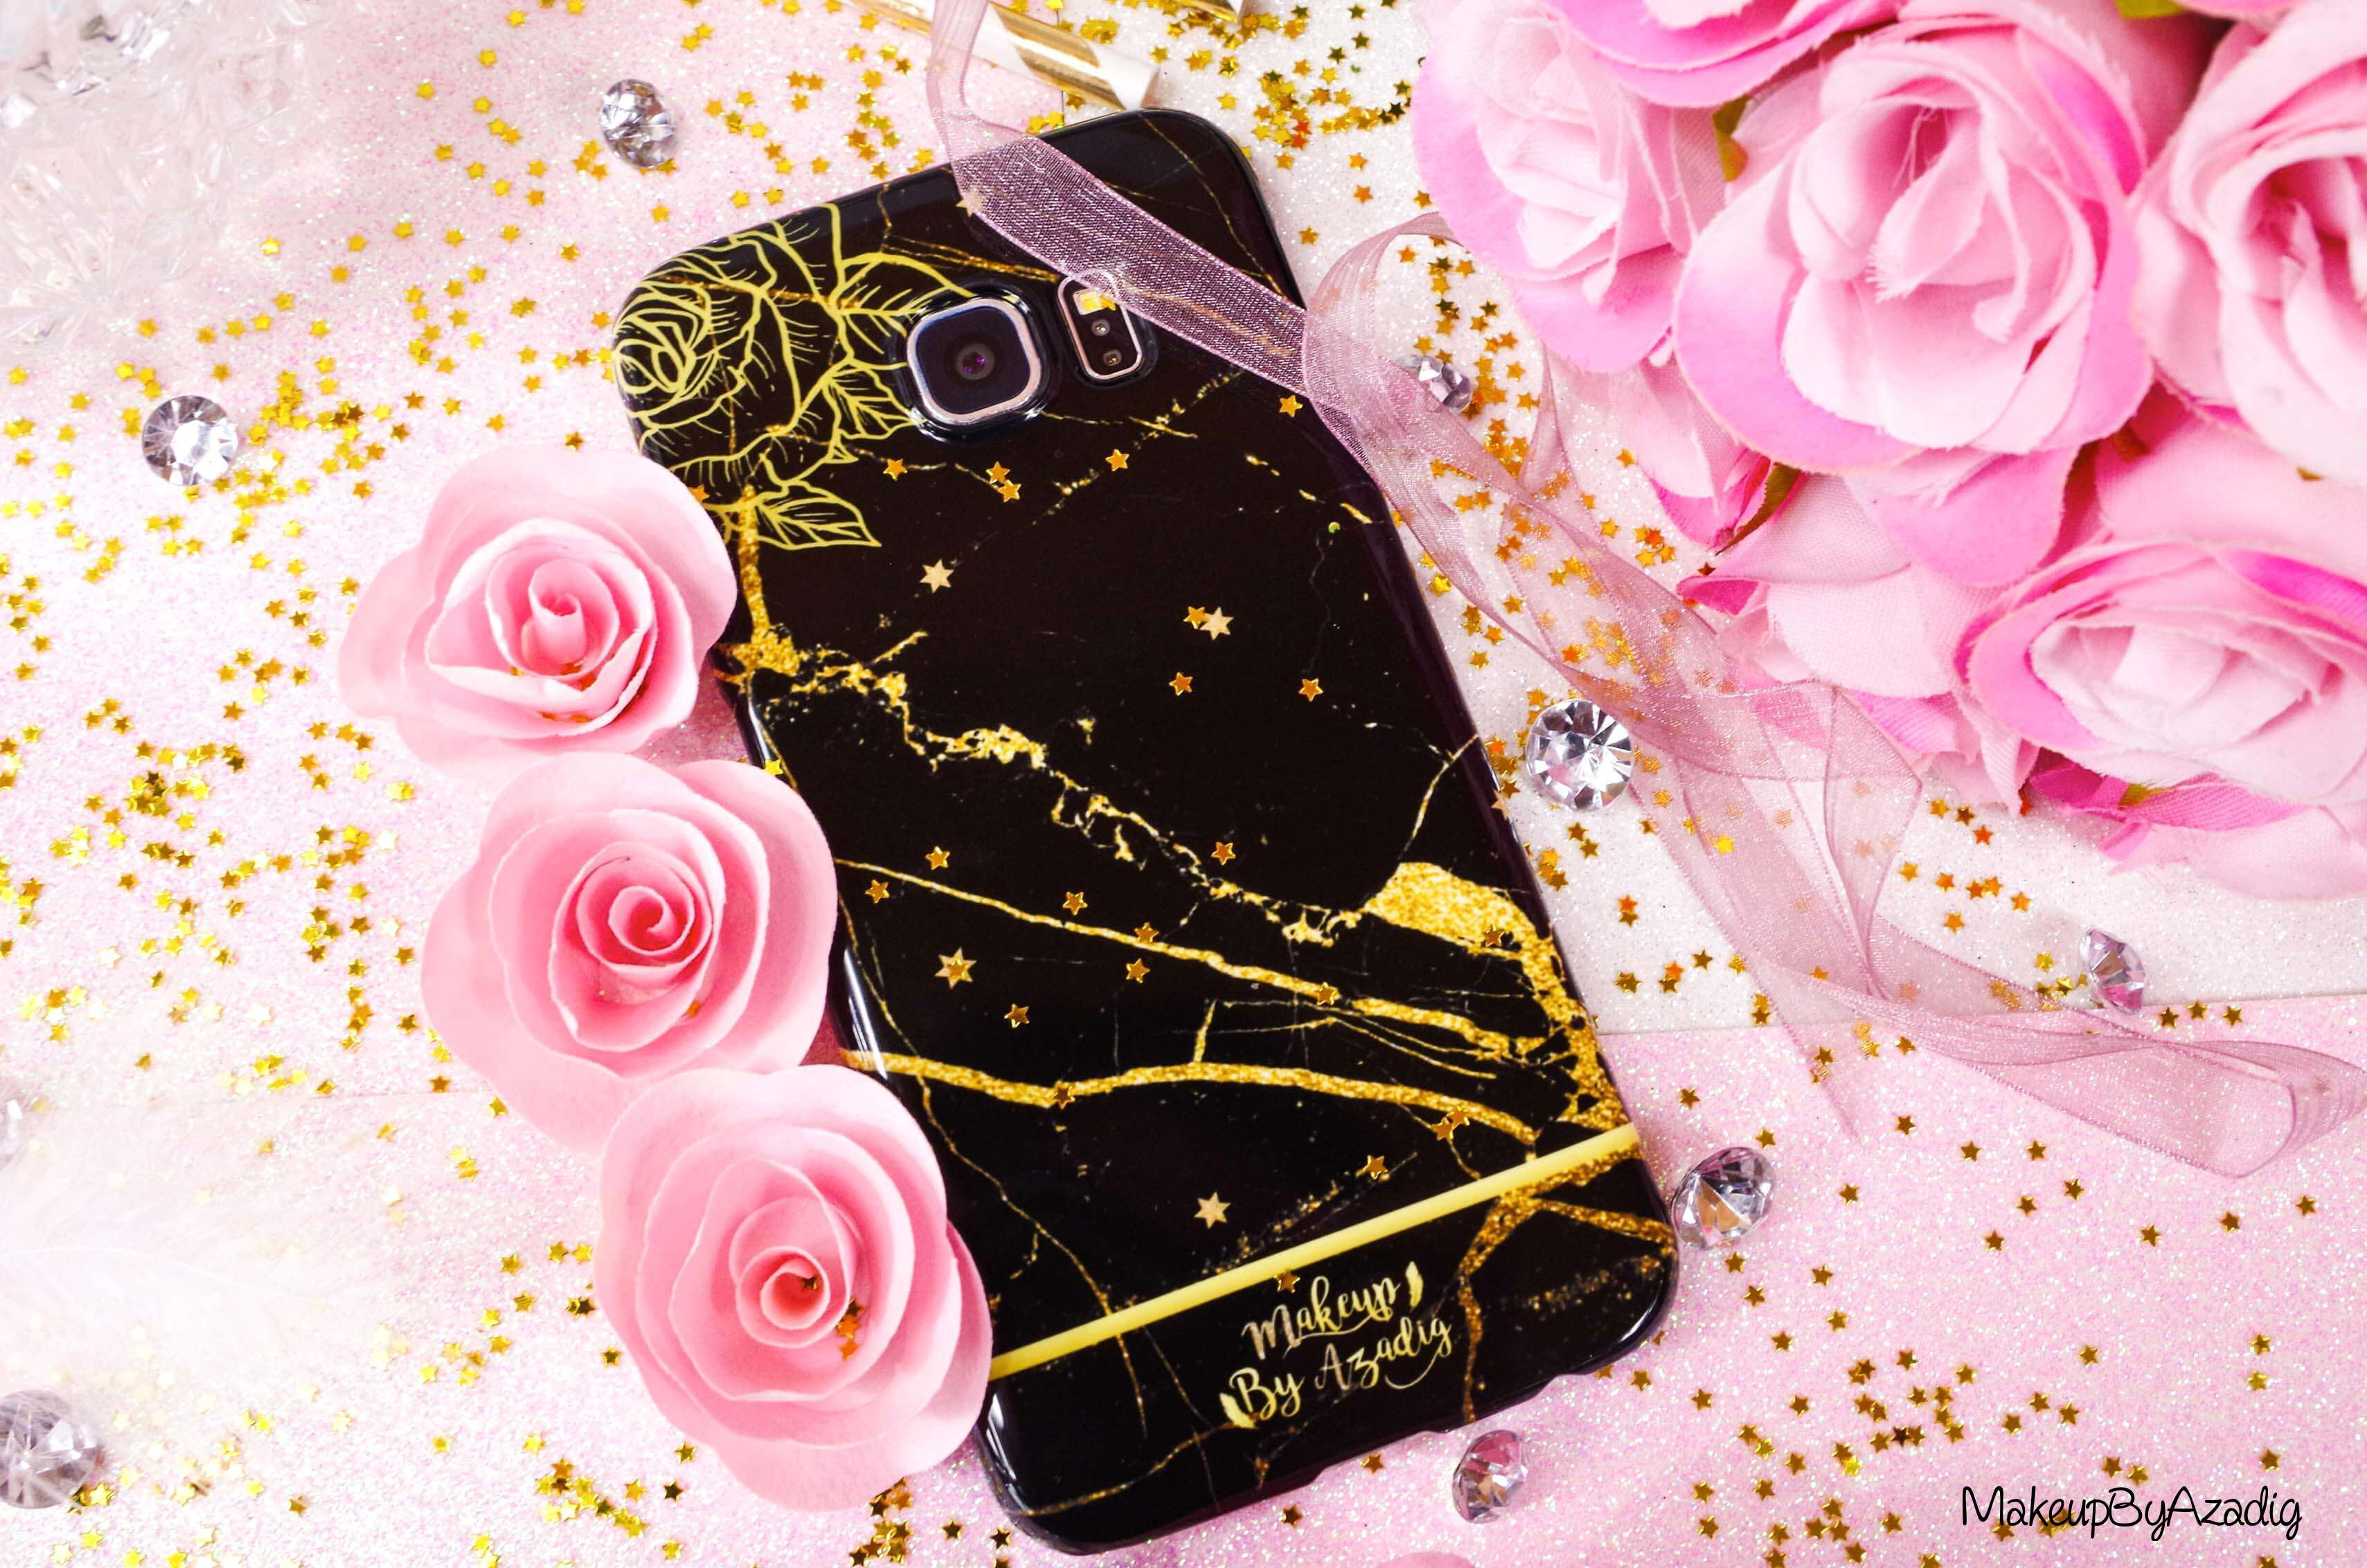 coque-skin-personnalise-caseapp-marbre-tropical-photo-makeupbyazadig-code-promo-kawai-girly